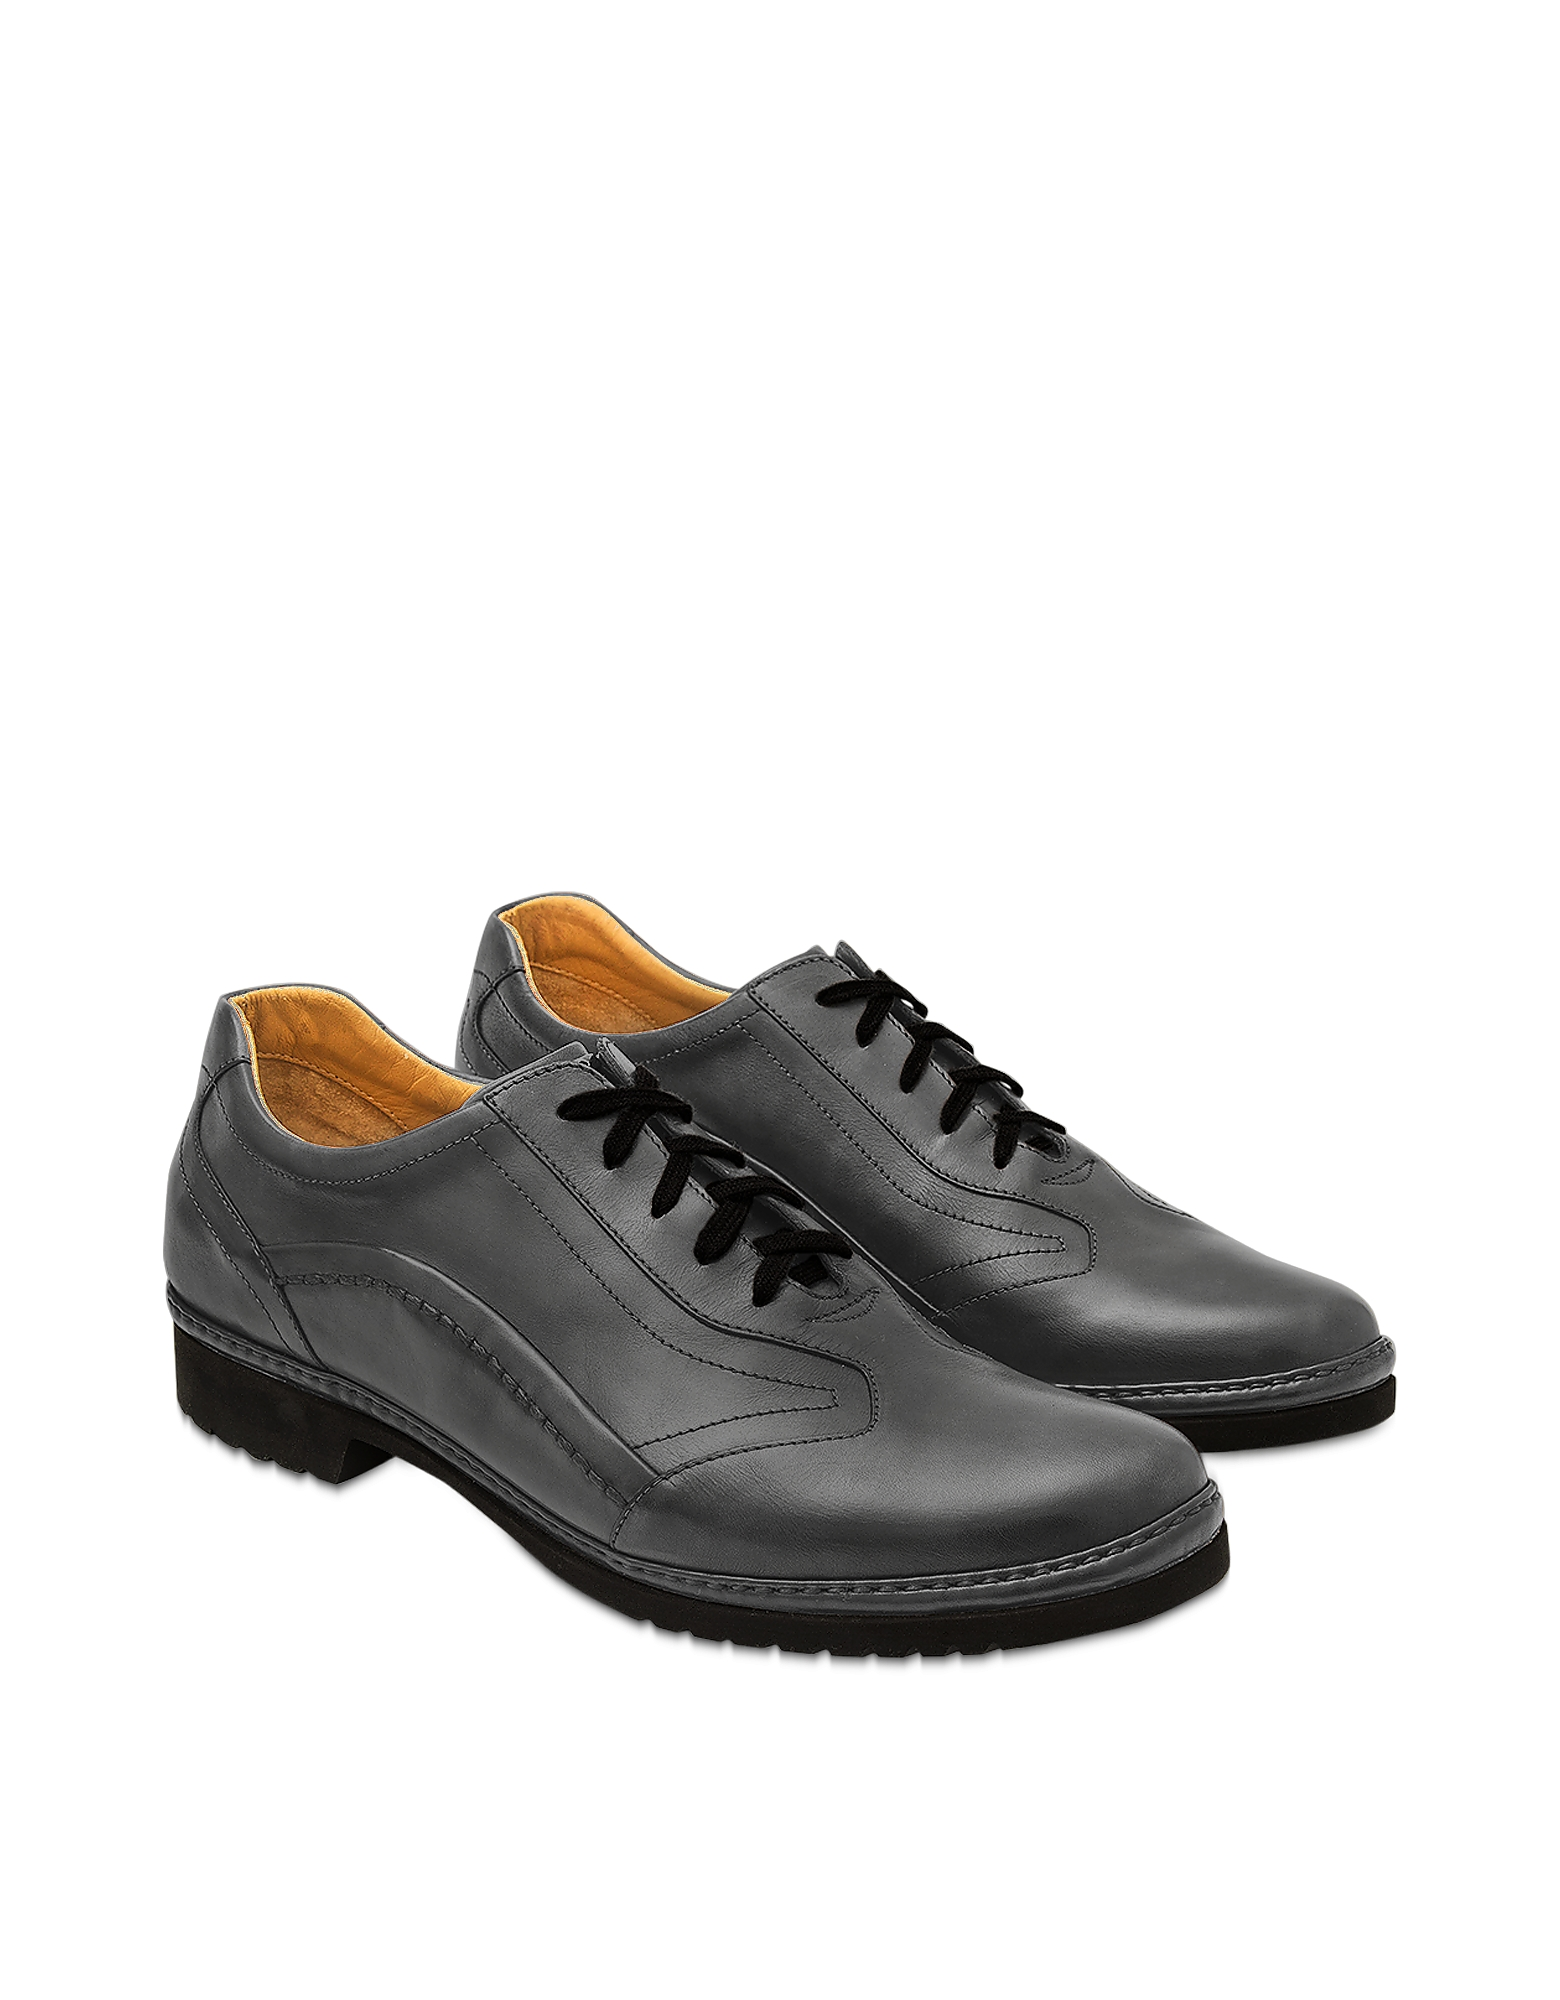 Pakerson Designer Shoes, Smoke Pienza Derby Shoe